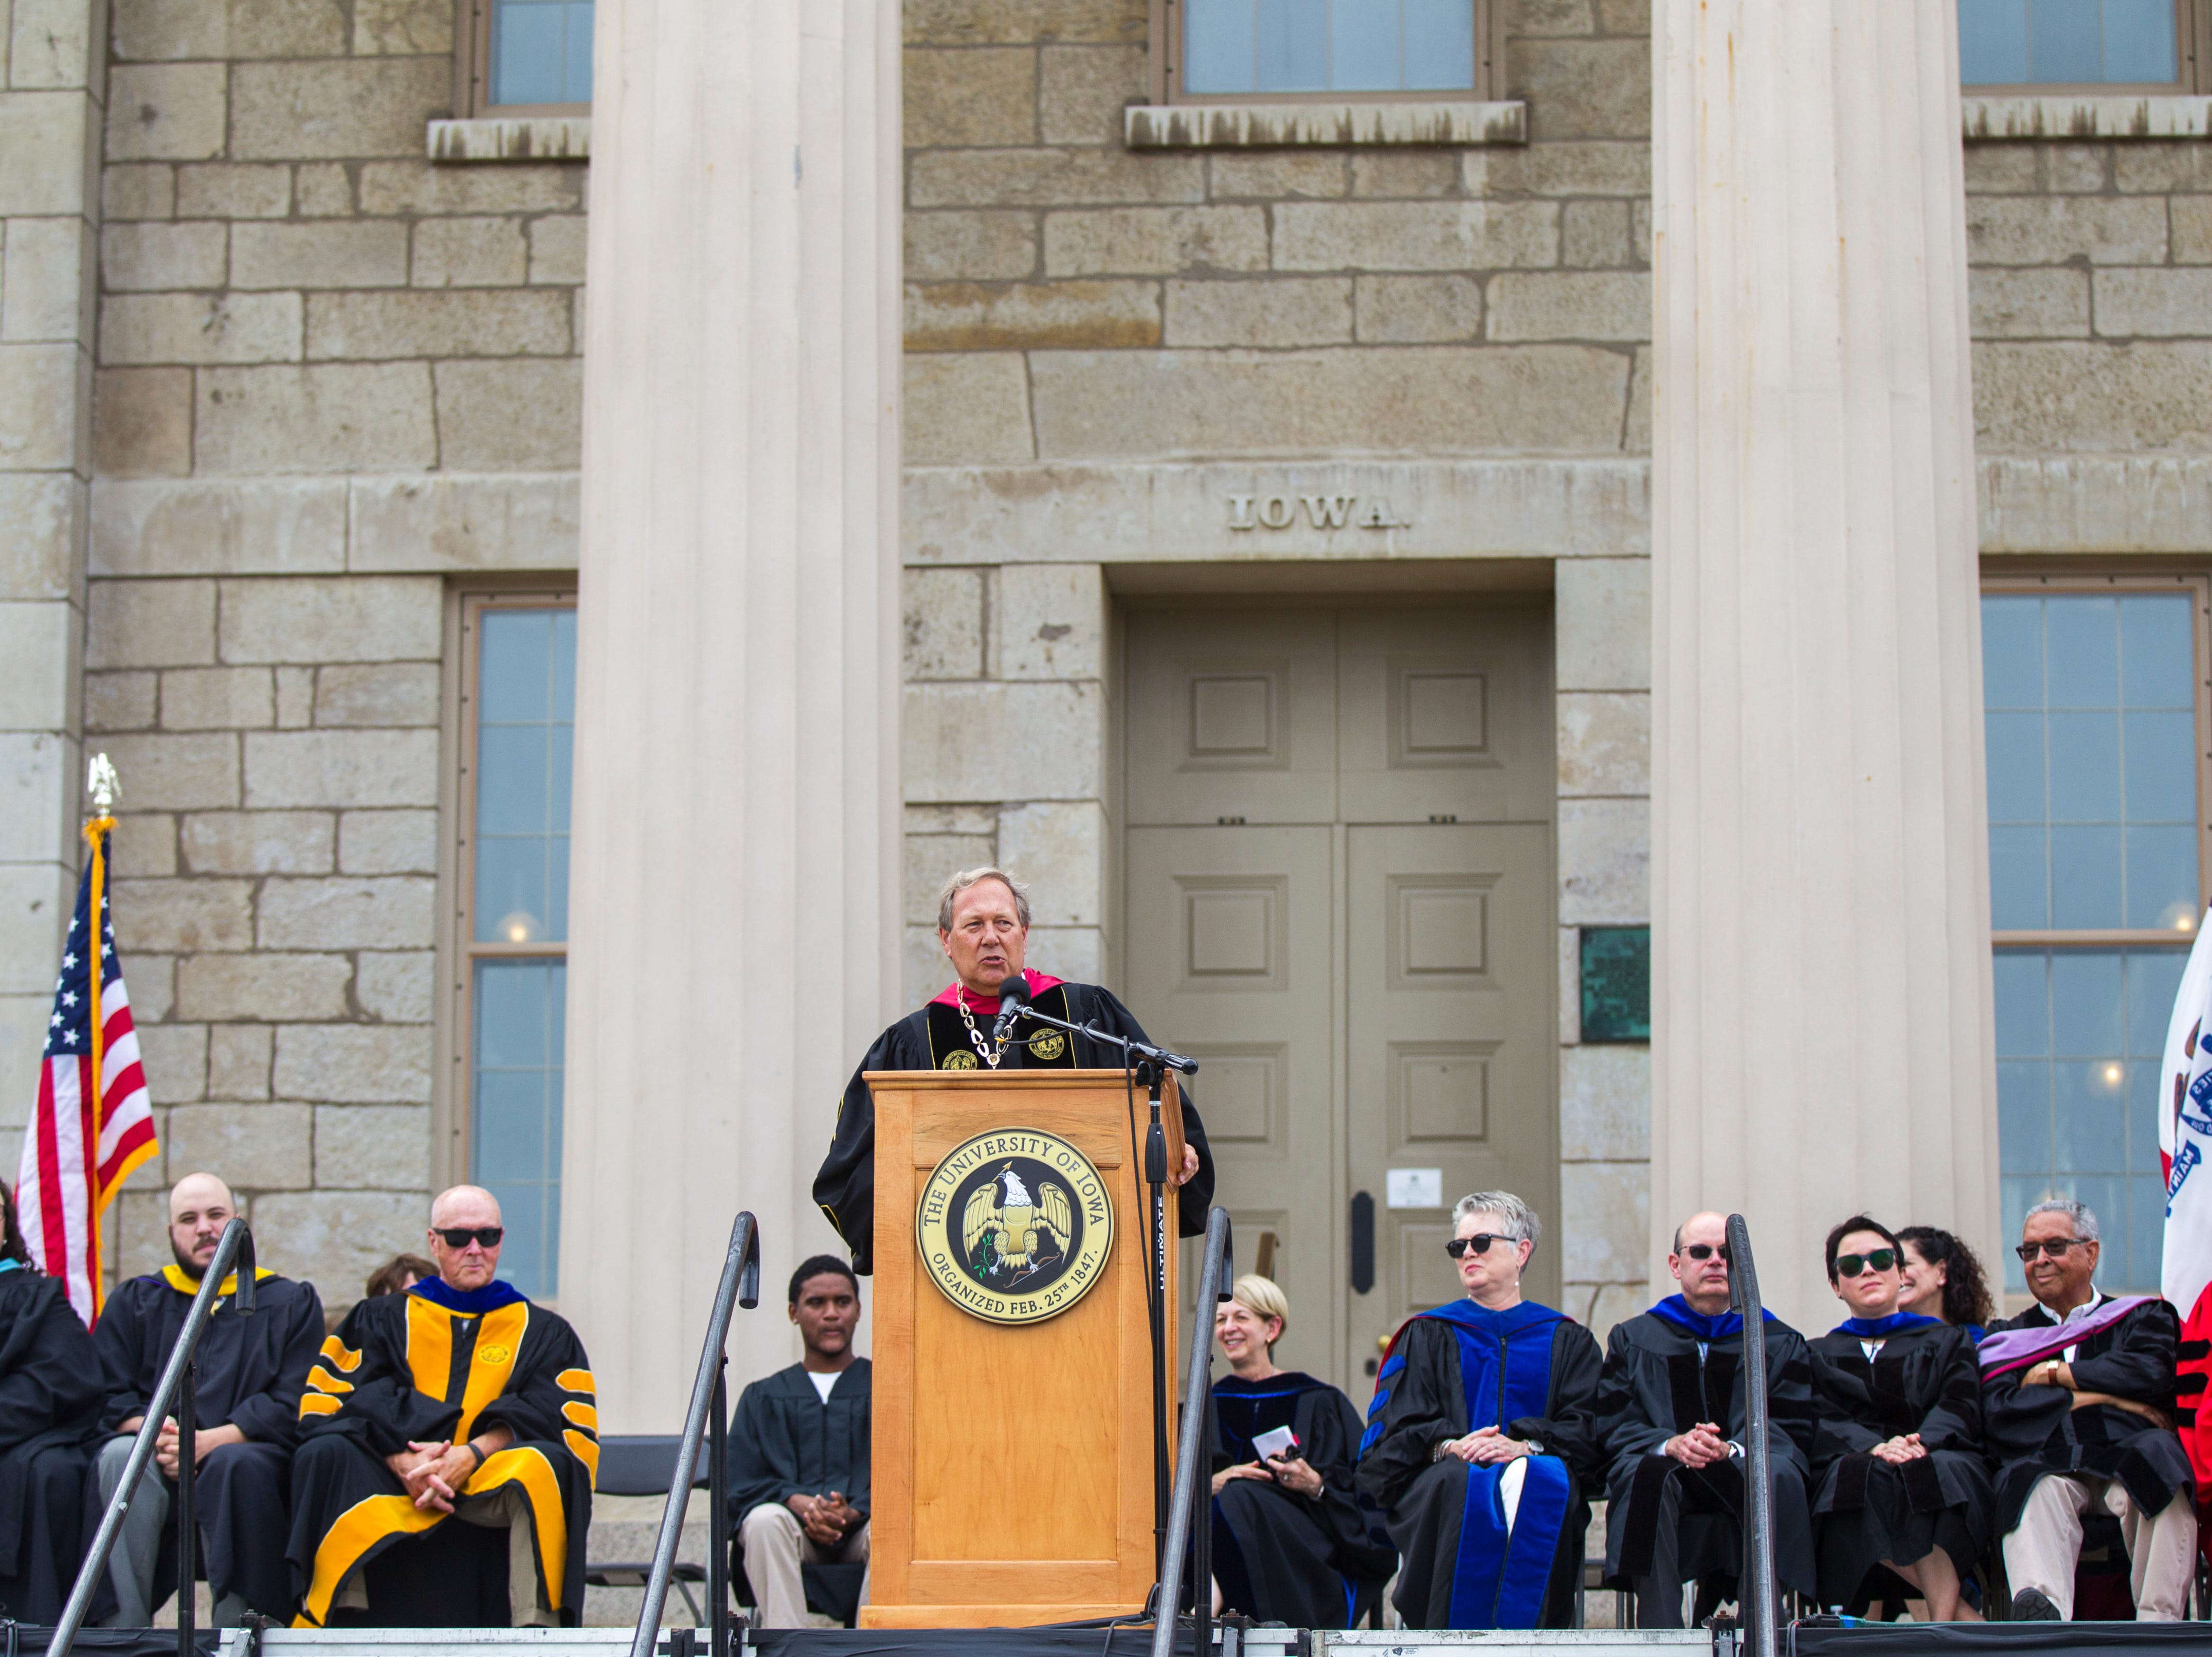 University of Iowa President J. Bruce Harreld speaks during the University of Iowa class of 2022 convocation on Sunday, Aug. 19, 2018, at the Pentacrest in Iowa City. Harreld is the 20th president at the university and began in 2015.